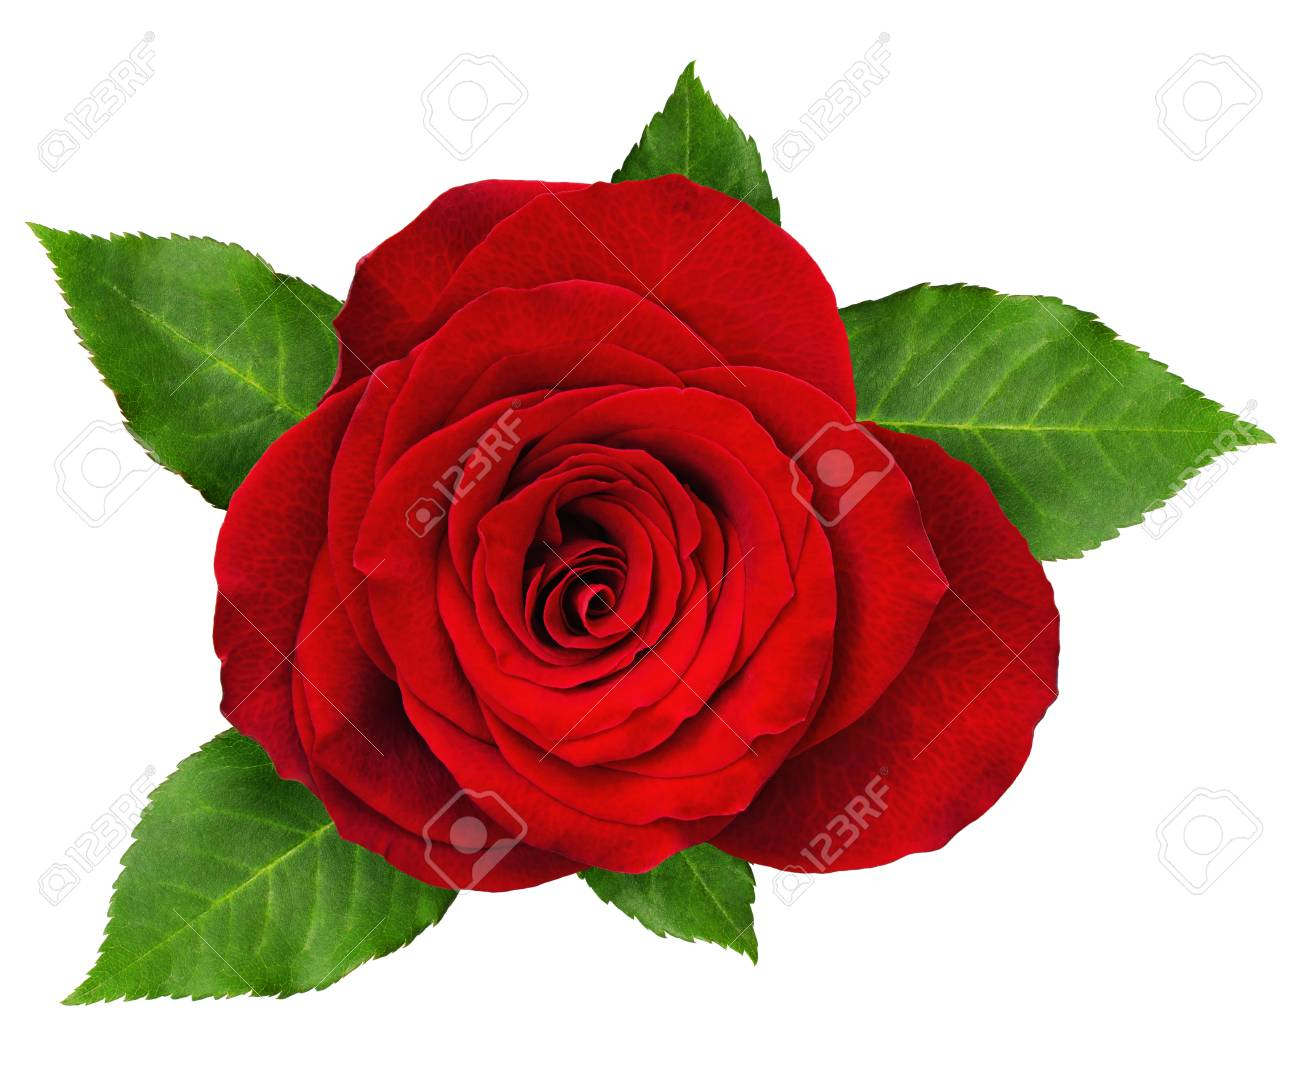 Red Rose Flower Rosette With Leaves Isolated On White Top View Stock Photo Picture And Royalty Free Image Image 80922433